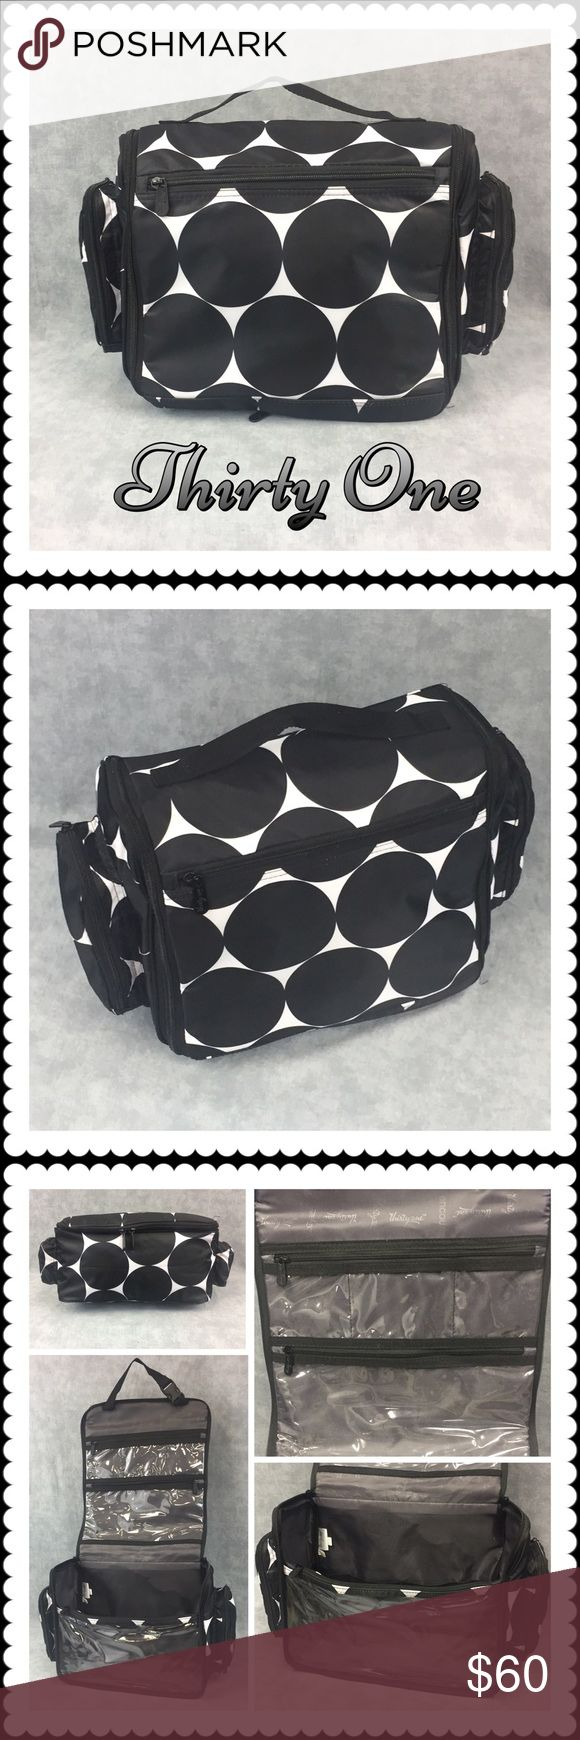 👜 Deluxe Beauty Bag 👜 Deluxe Beauty Bag 👜 Only available to Hostesses, this fabulous travel bag for toiletries is convenient yet full of great details. Pockets galore, lined and netting, hang strap and double zipper closing. Comes with additional bottle bag. Thirty One Bags Travel Bags